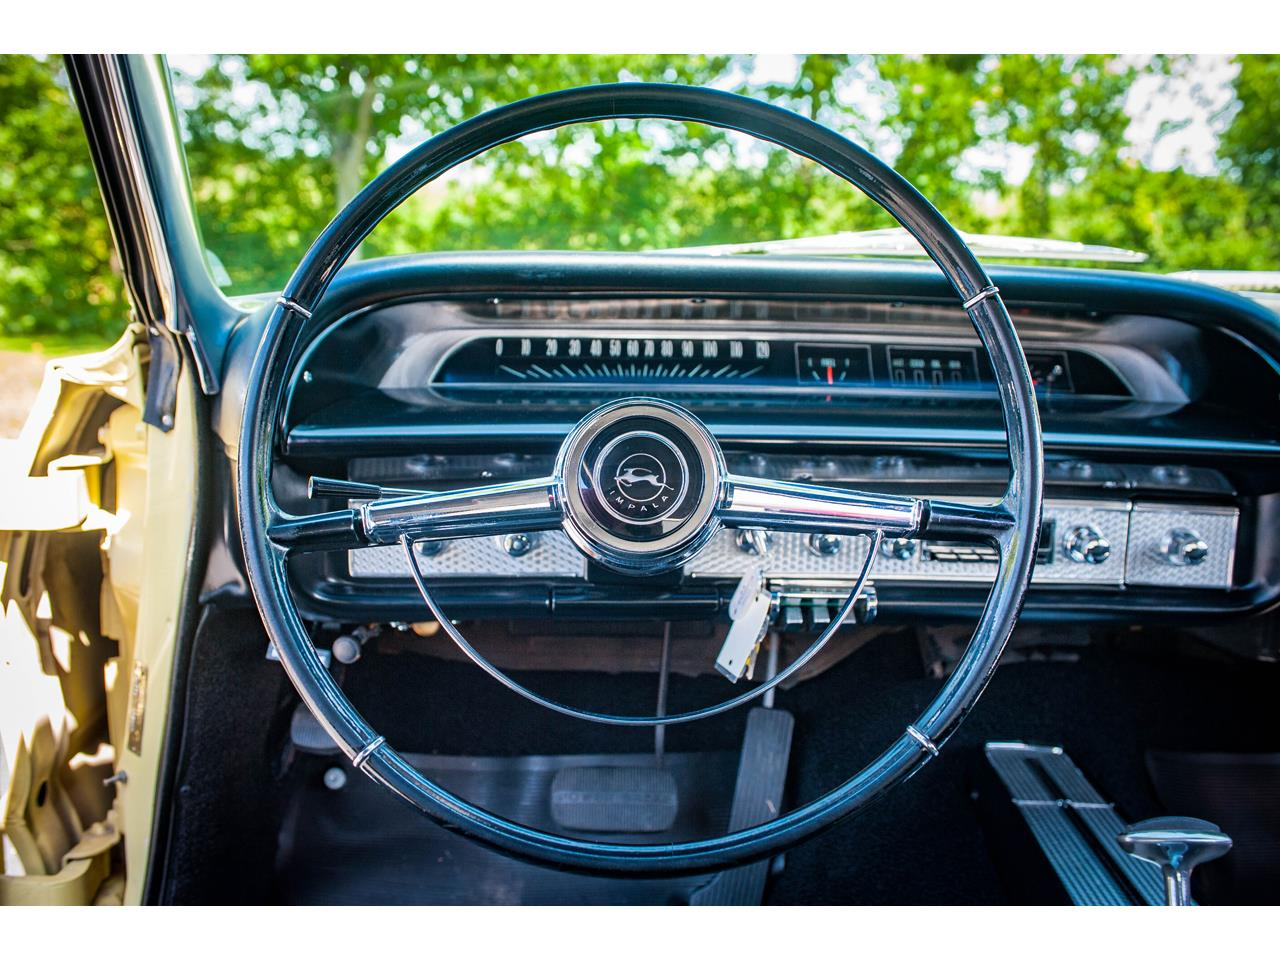 Large Picture of Classic '64 Impala located in Illinois - $45,000.00 - QRDR